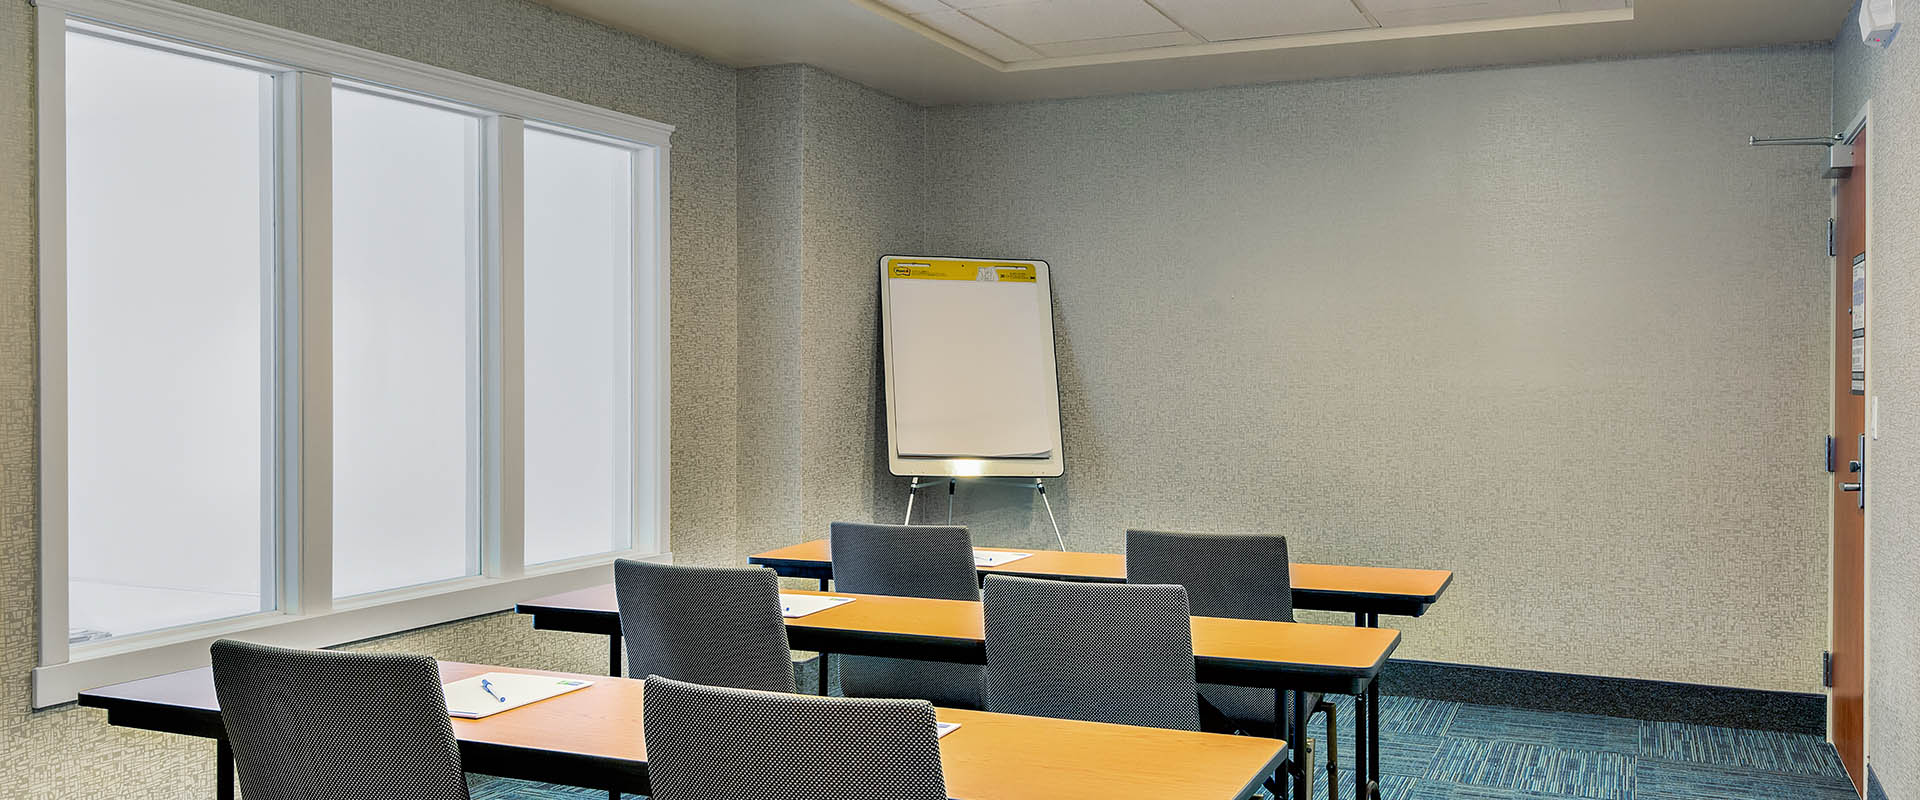 IHG hotel, Lake Oroville California hotel, meetings, conference room, events